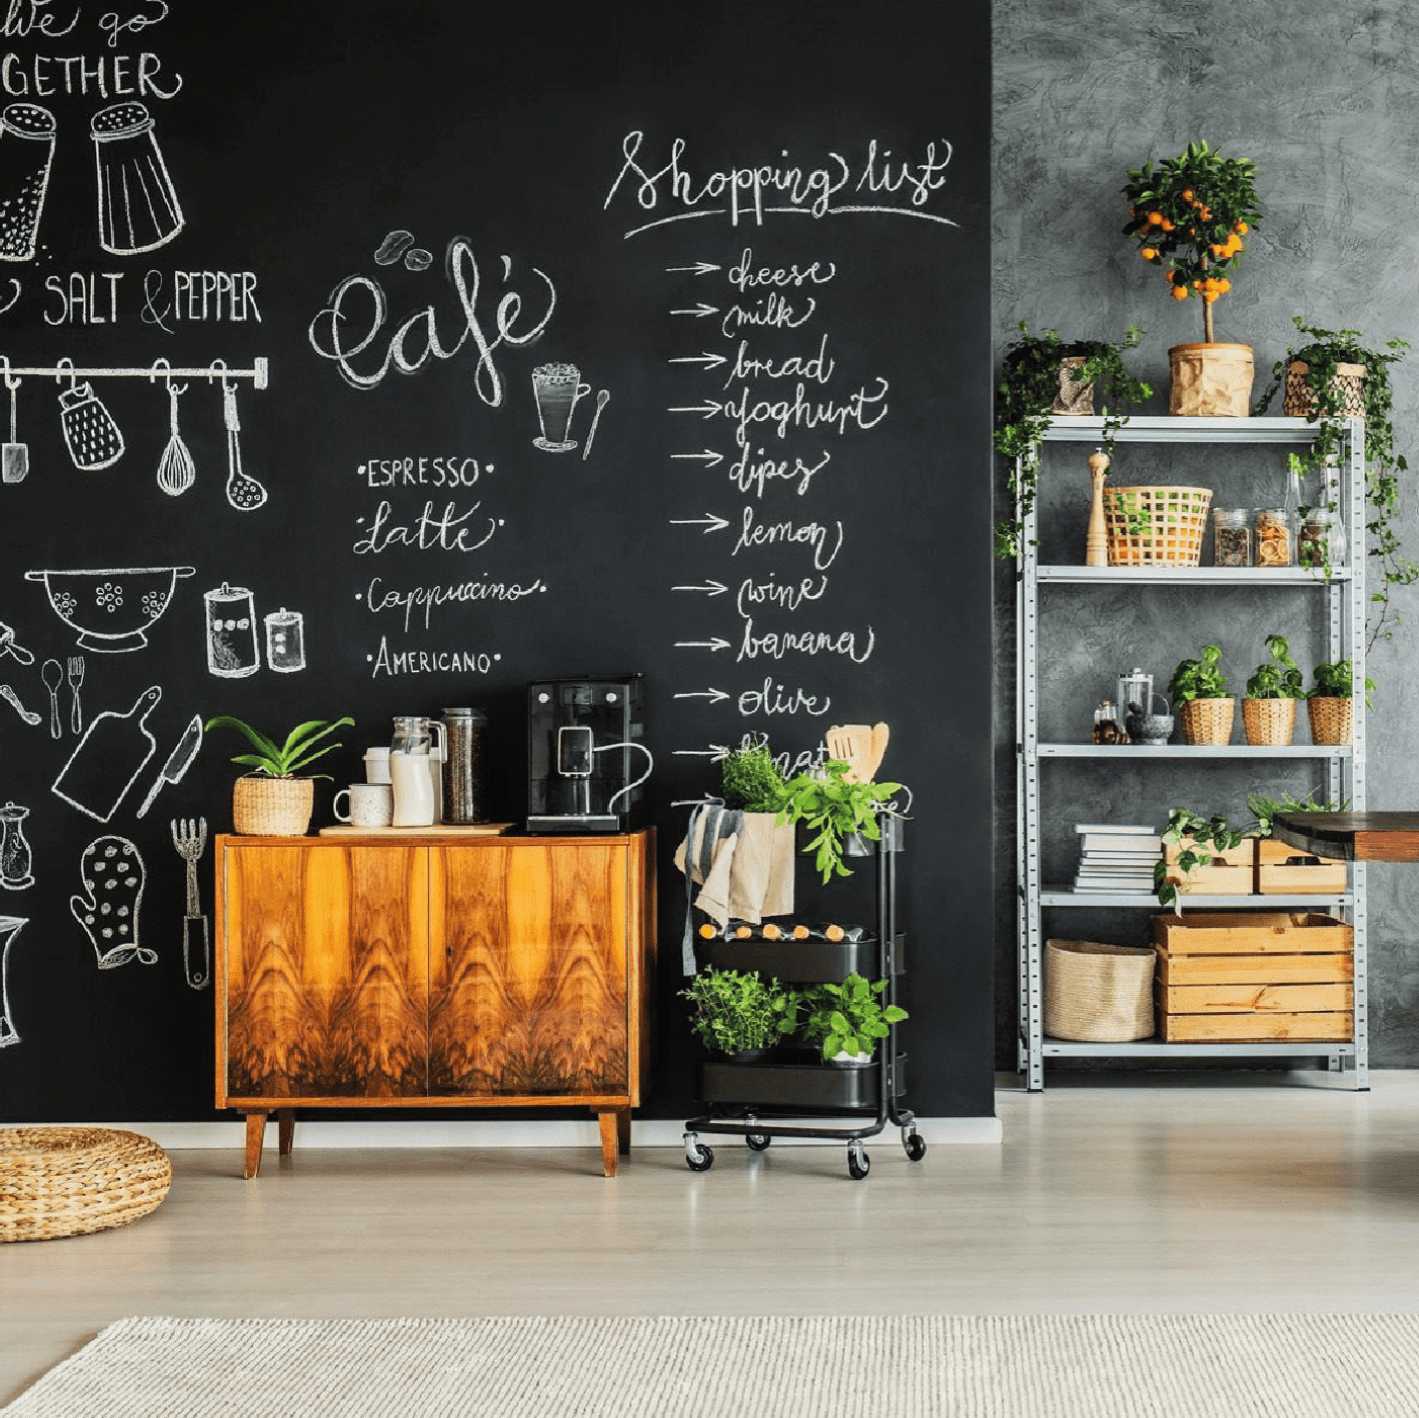 How You Can Use Creative Board's Products In Your Home